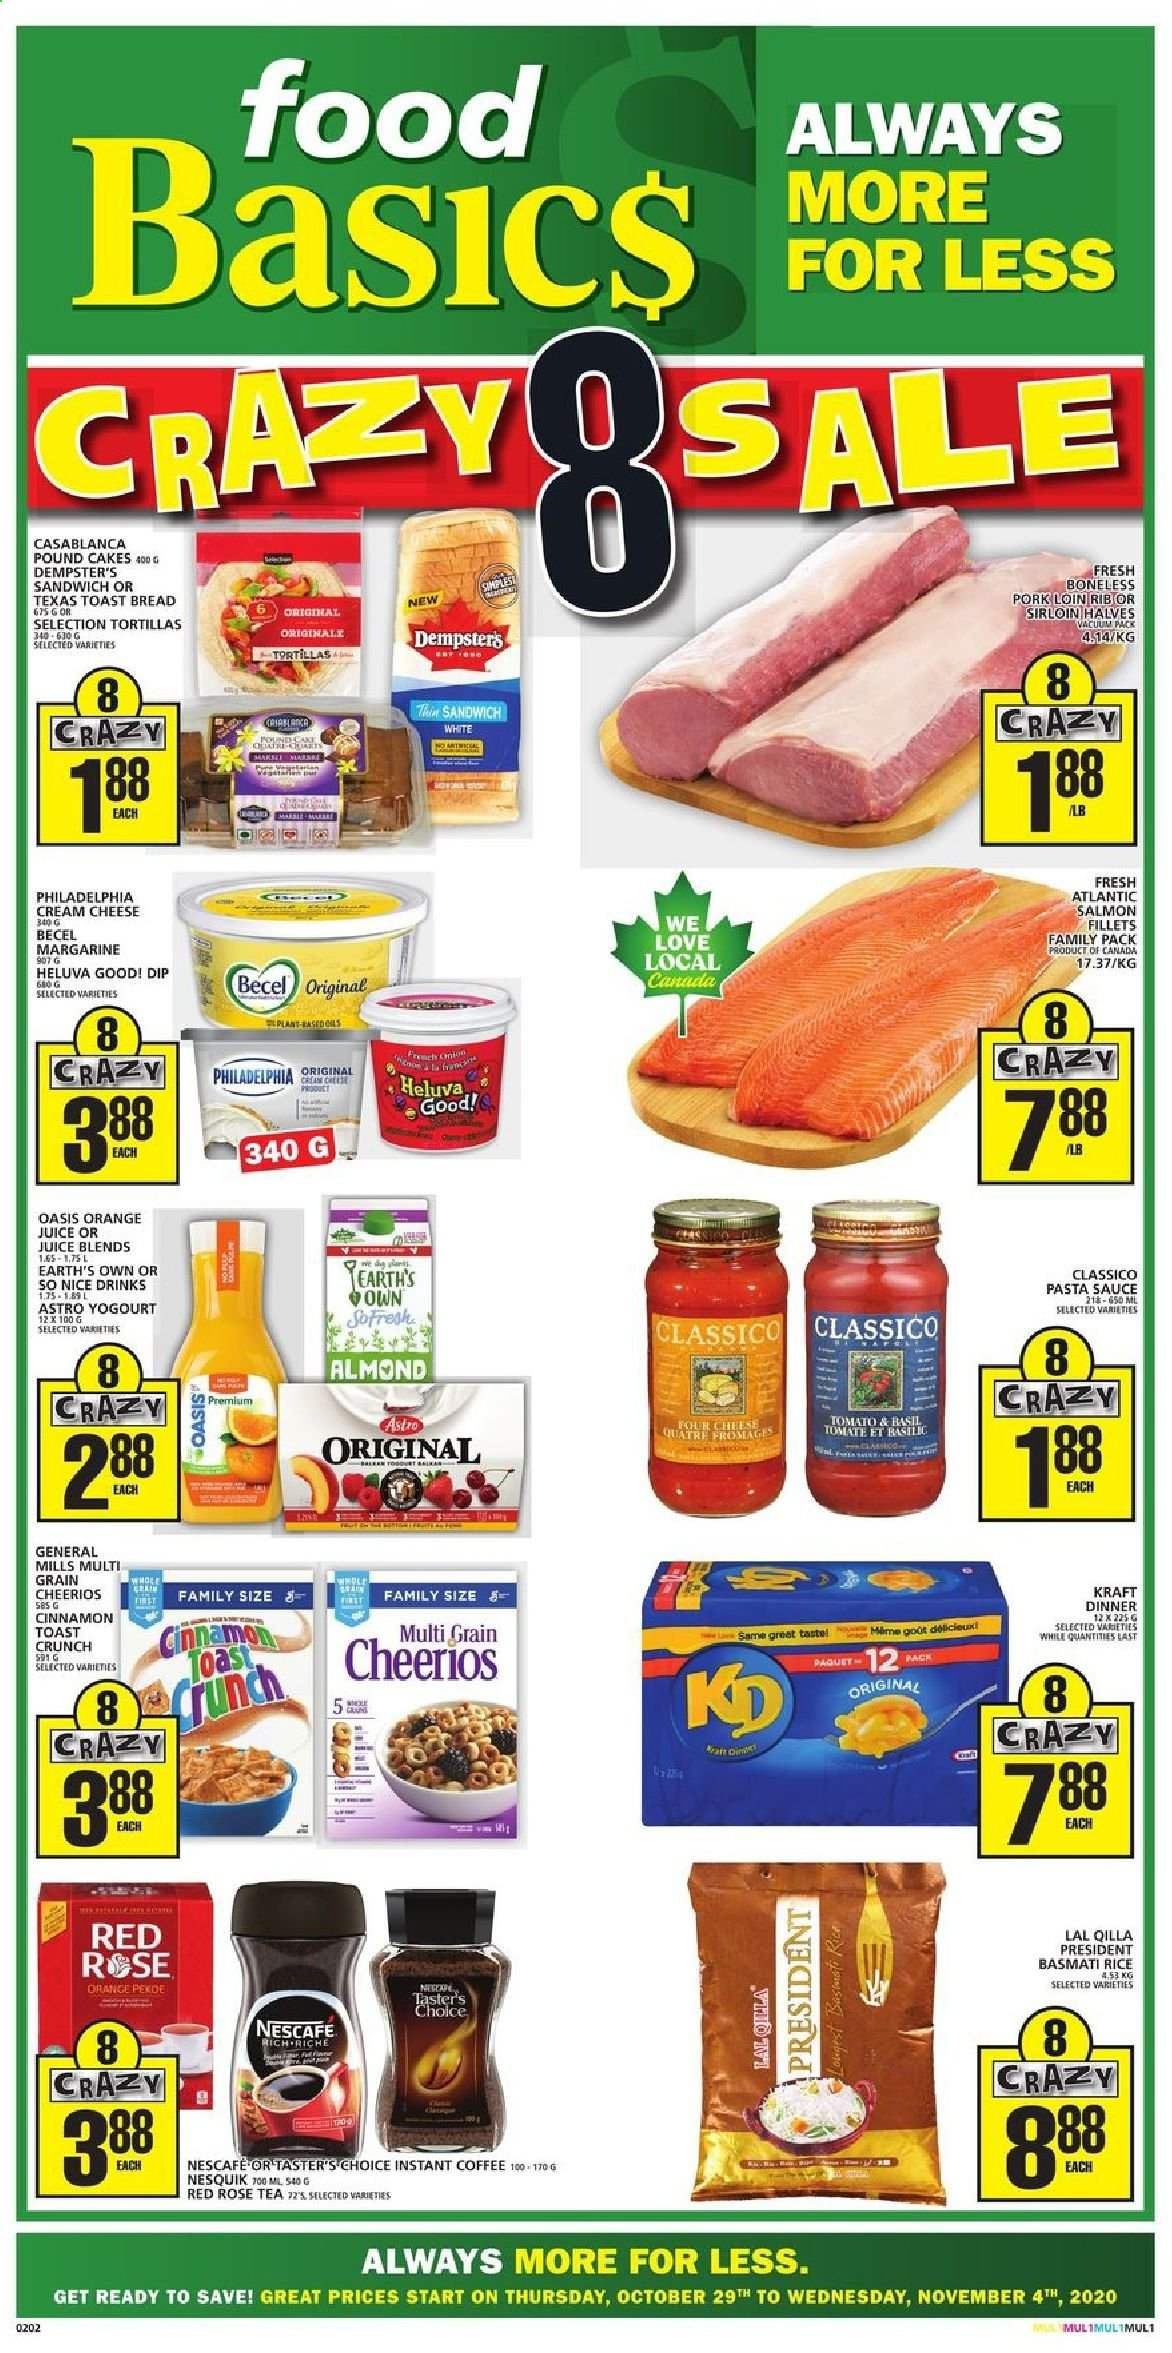 Food Basics Flyer - October 29, 2020 - November 04, 2020 - Sales products - always, basil, basmati rice, bread, cream cheese, dolce & gabbana, margarine, rice, salmon, tea, tortillas, instant coffee, philadelphia, pork loin, pork meat, cheerios, pasta sauce, orange juice, cheese, juice, sandwich, pasta, sauce, tomates, basilic, four, tortilla, nescafé, orange, family pack, tomato, rosé. Page 1.